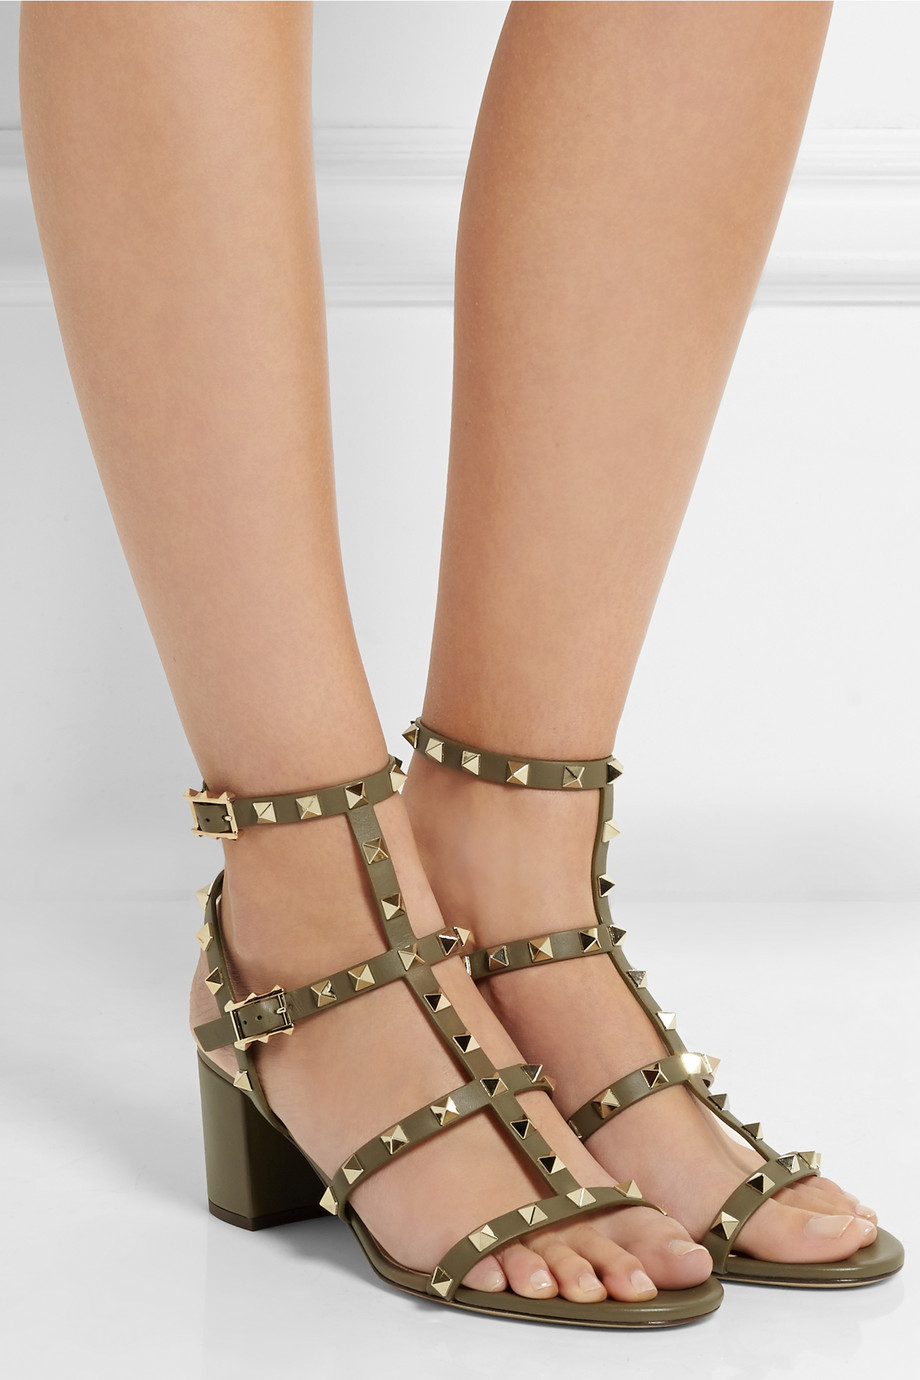 171b70f1e6b9 Lyst - Valentino Rockstud Leather Sandals in Green